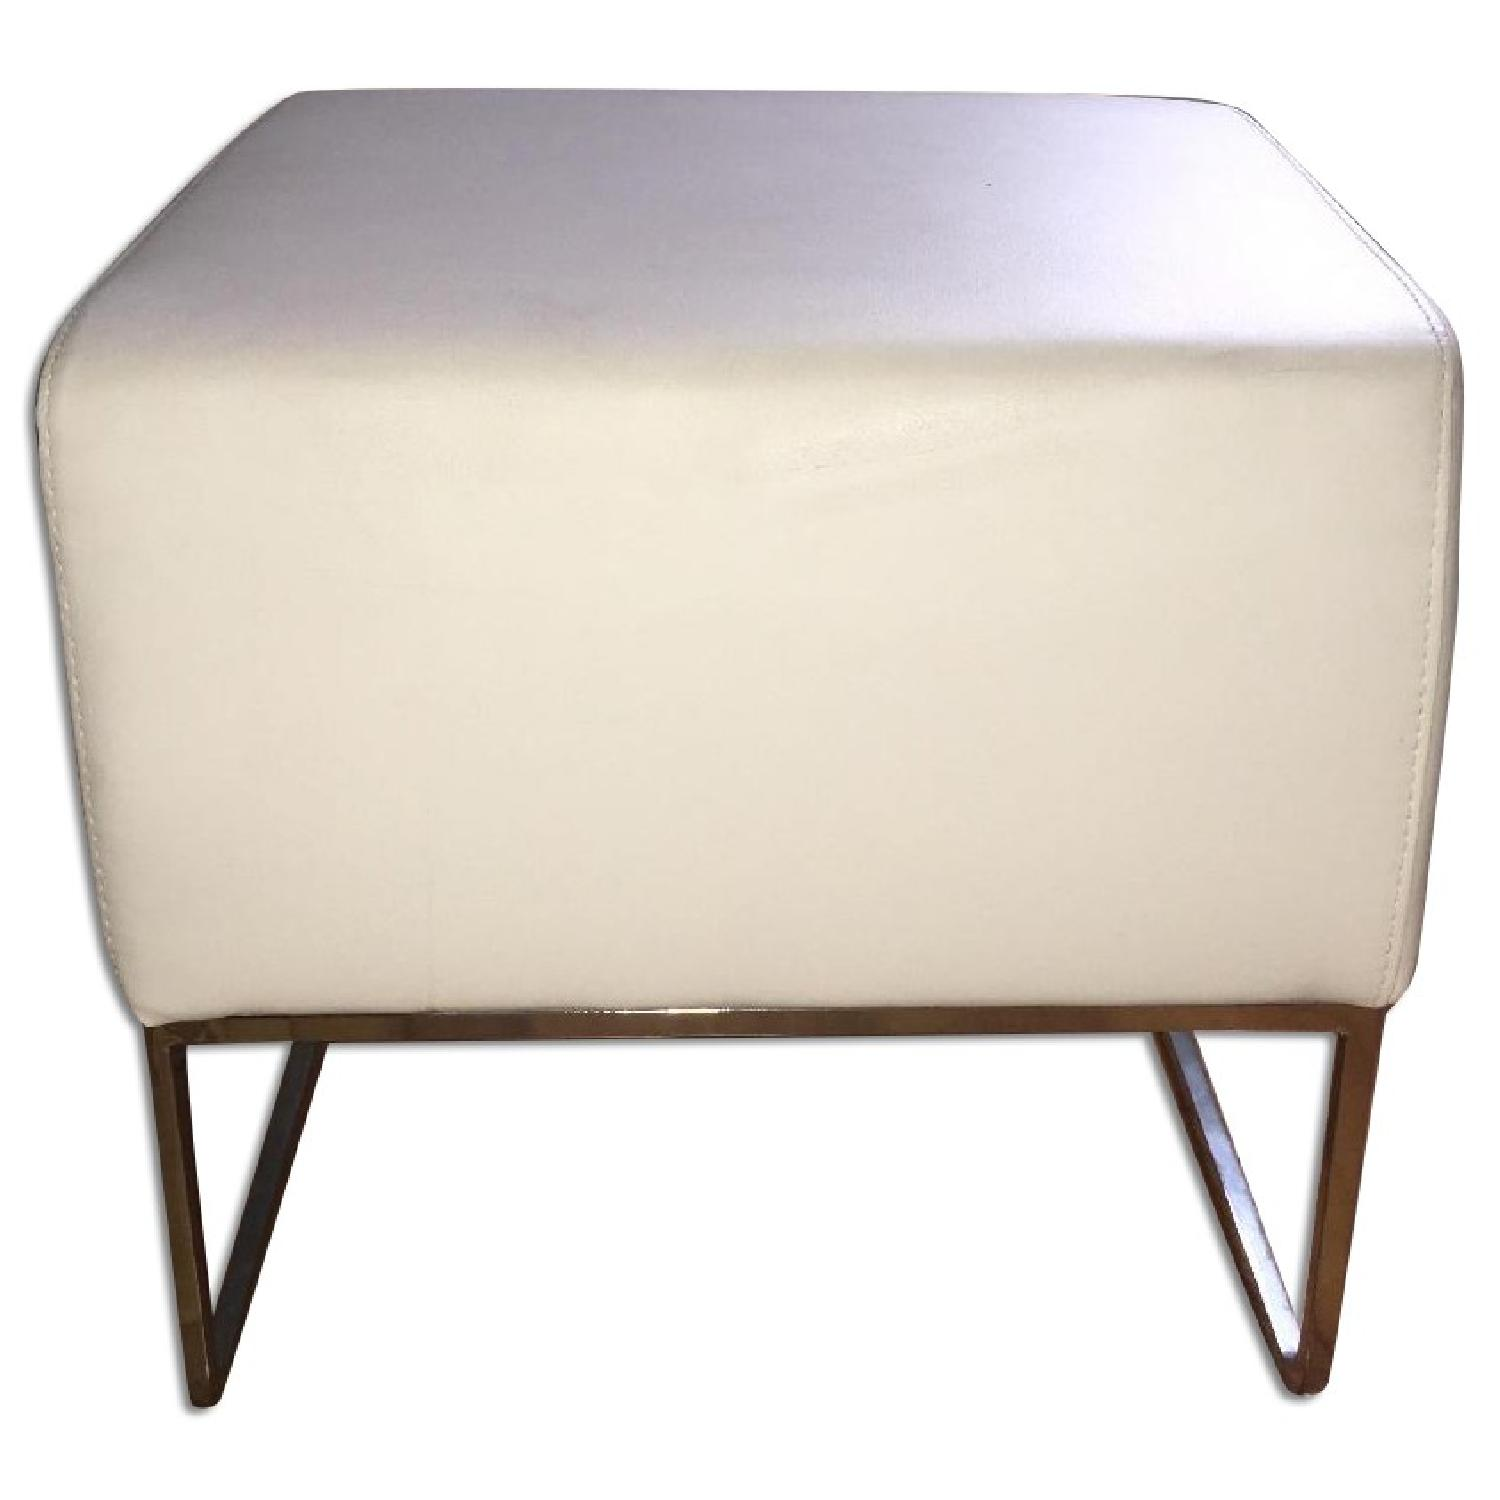 White Leather Ottoman Pouf Footstools - 3 Available - image-0